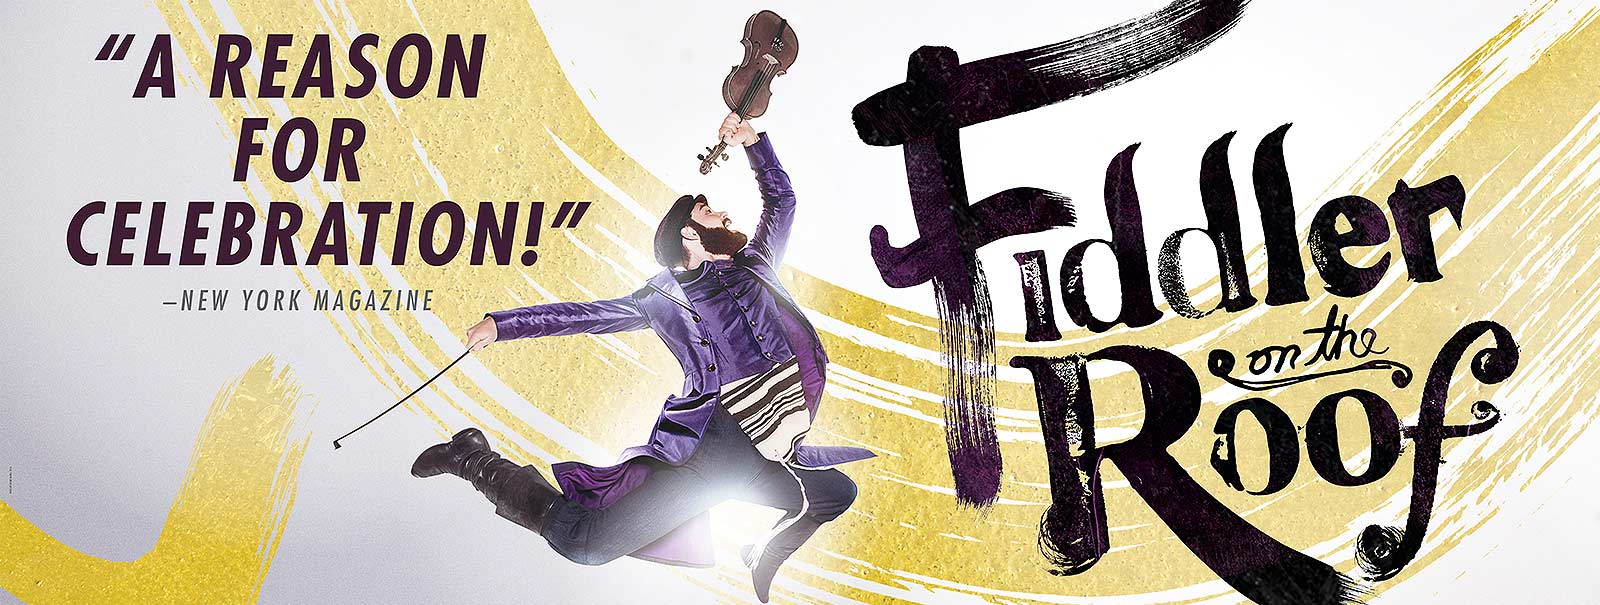 More Info - Fiddler on the Roof